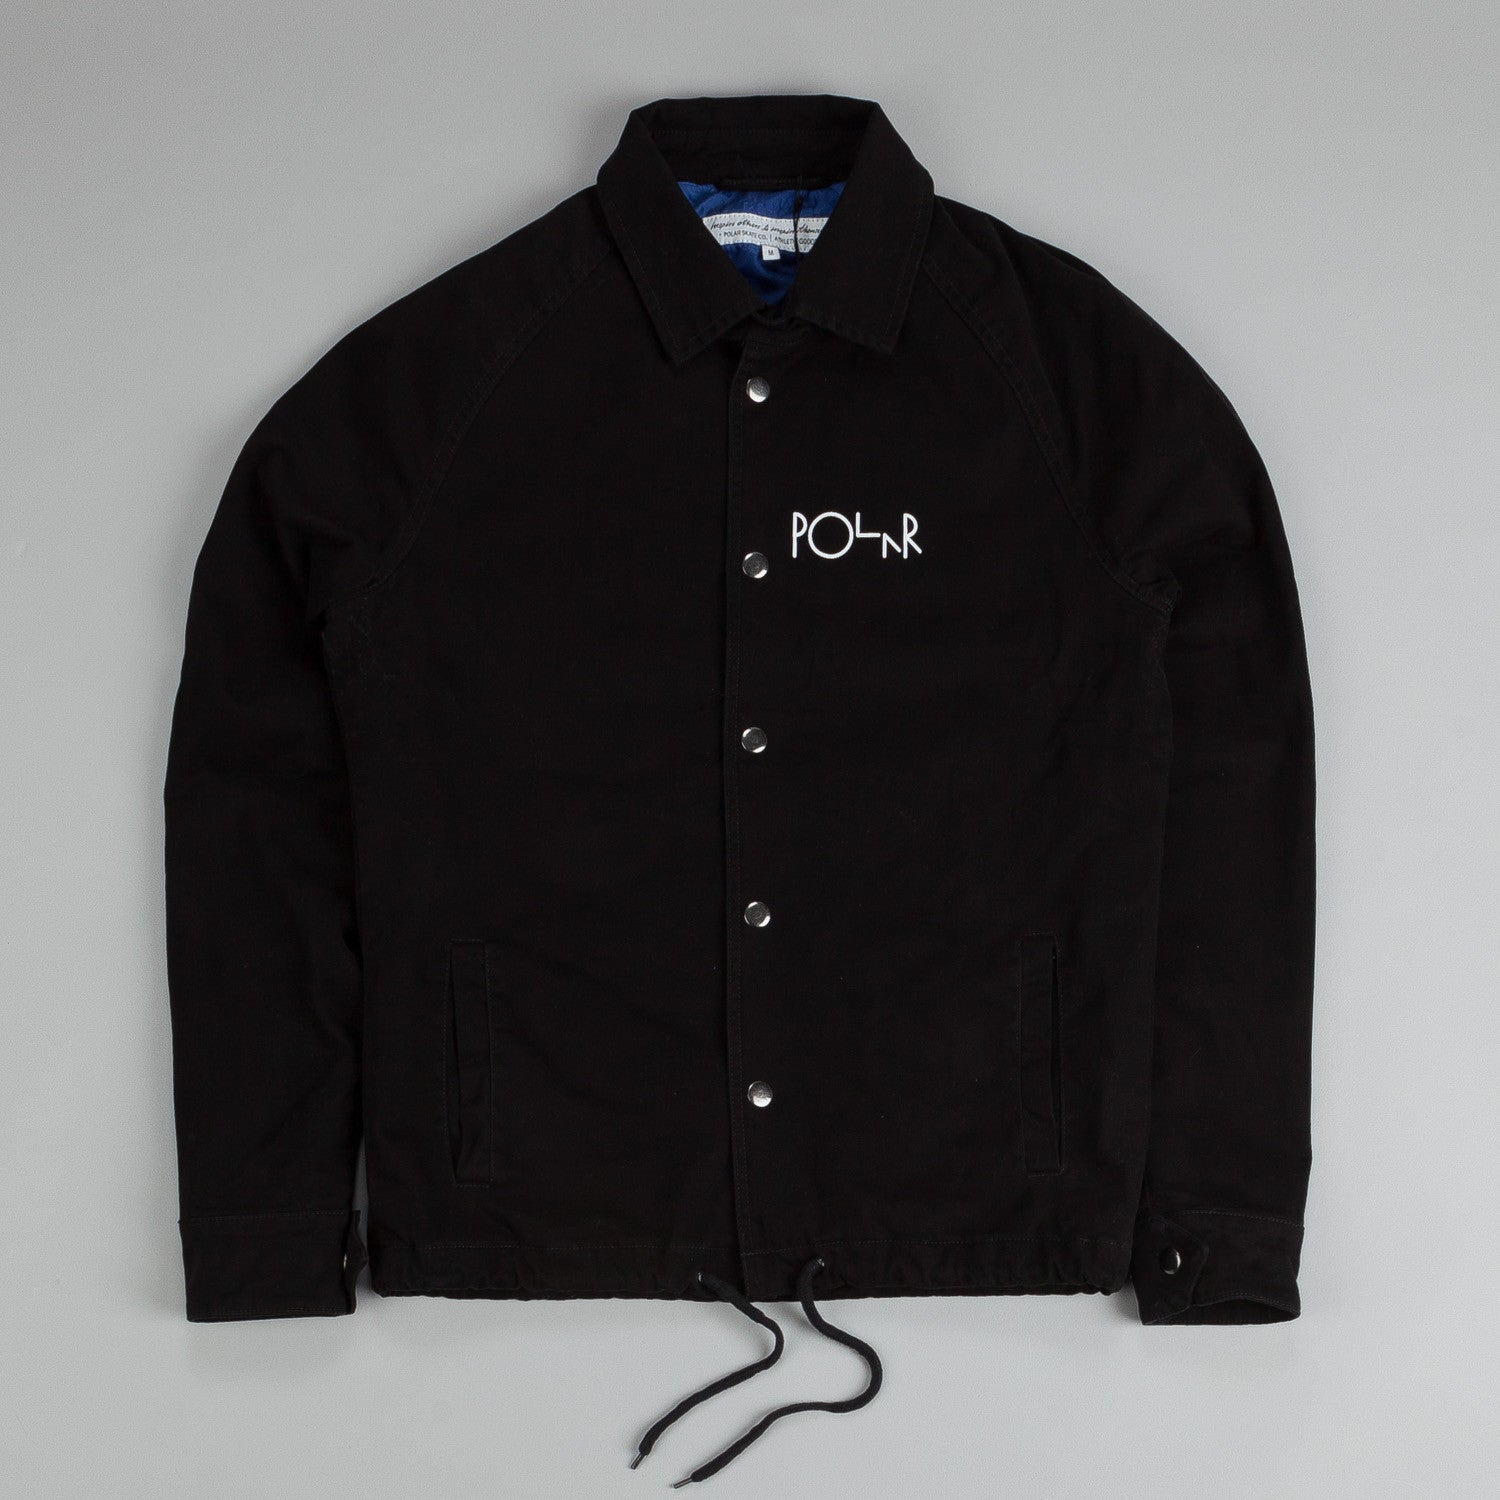 Polar Coach Jacket Black / Blue / White Stroke Logo